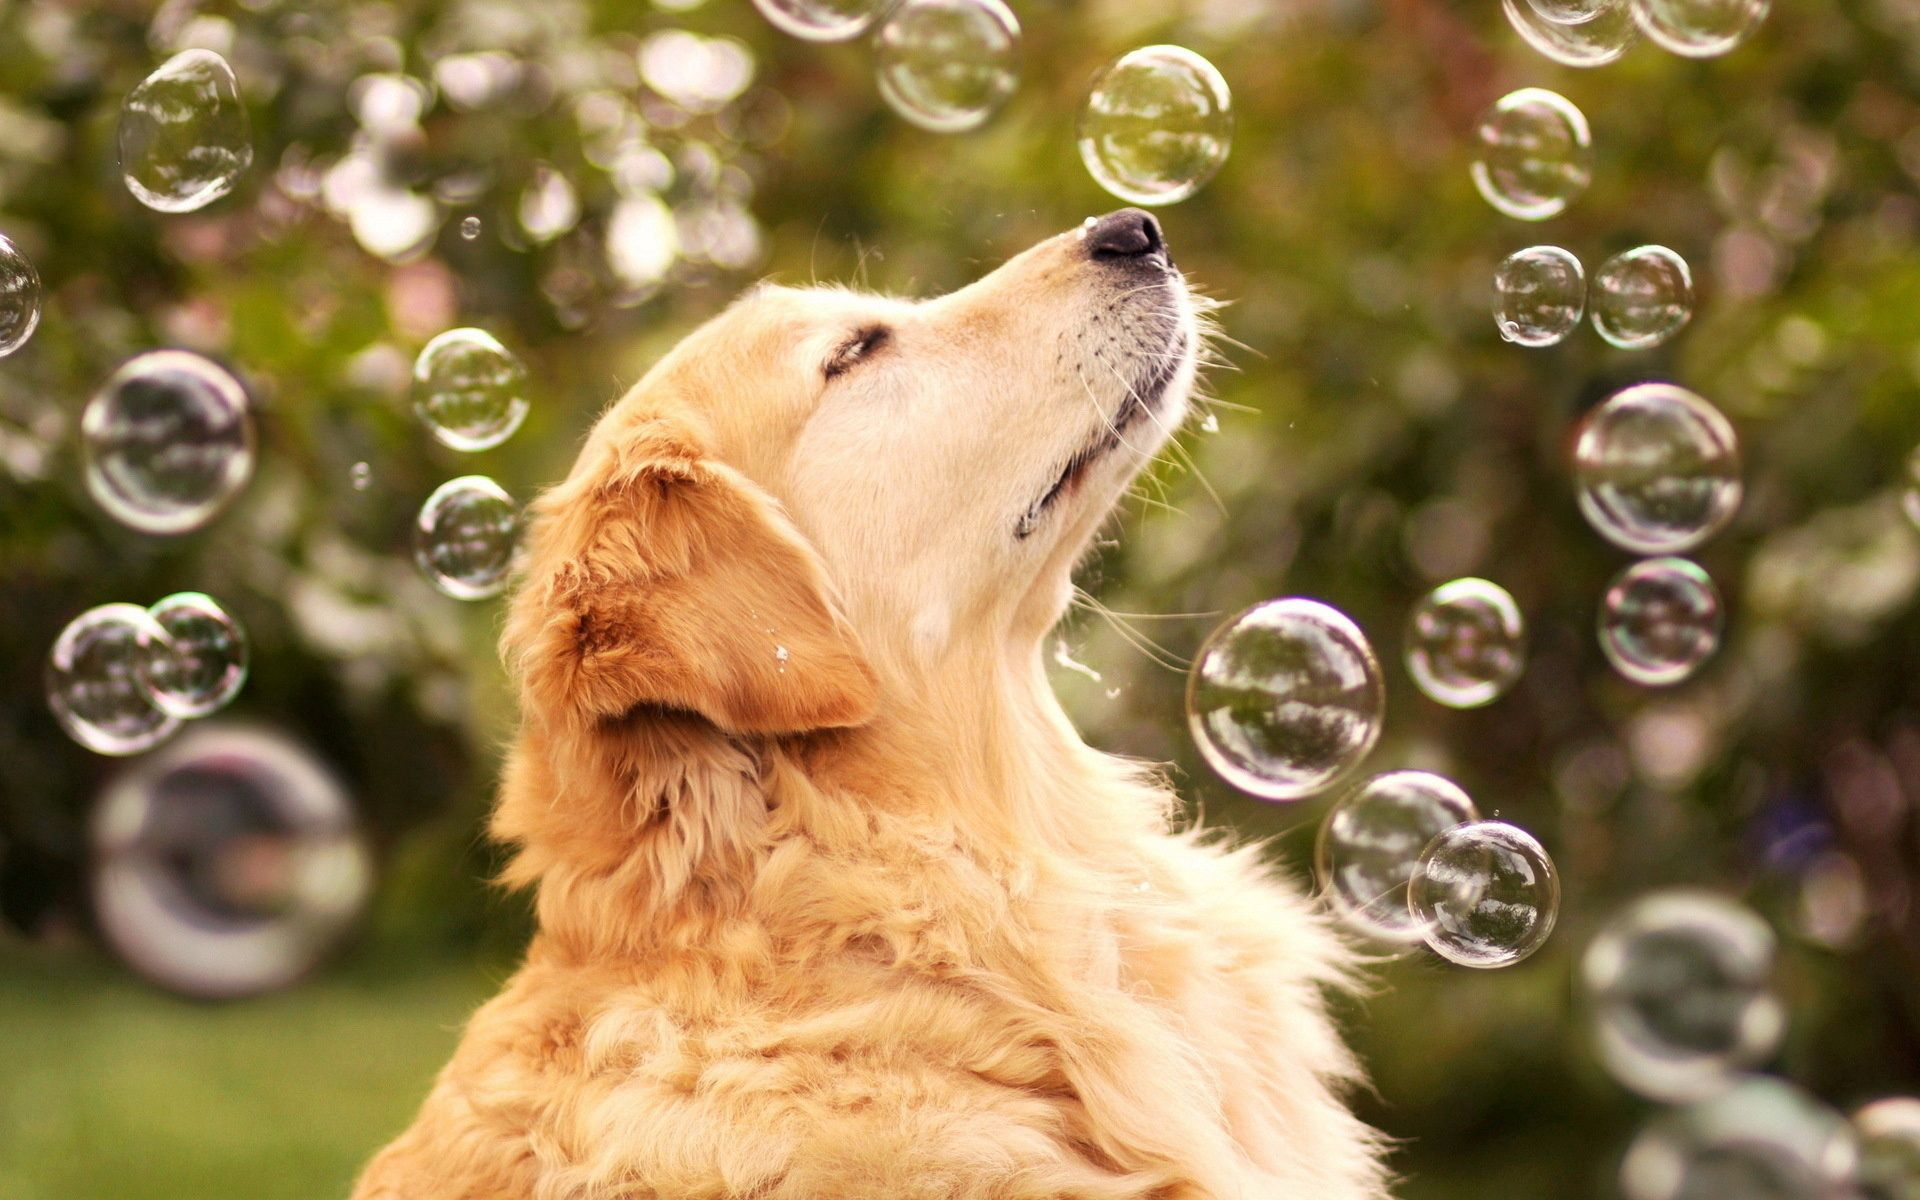 137396 download wallpaper Animals, Dog, Blur, Smooth, Muzzle, Profile, Bubbles screensavers and pictures for free